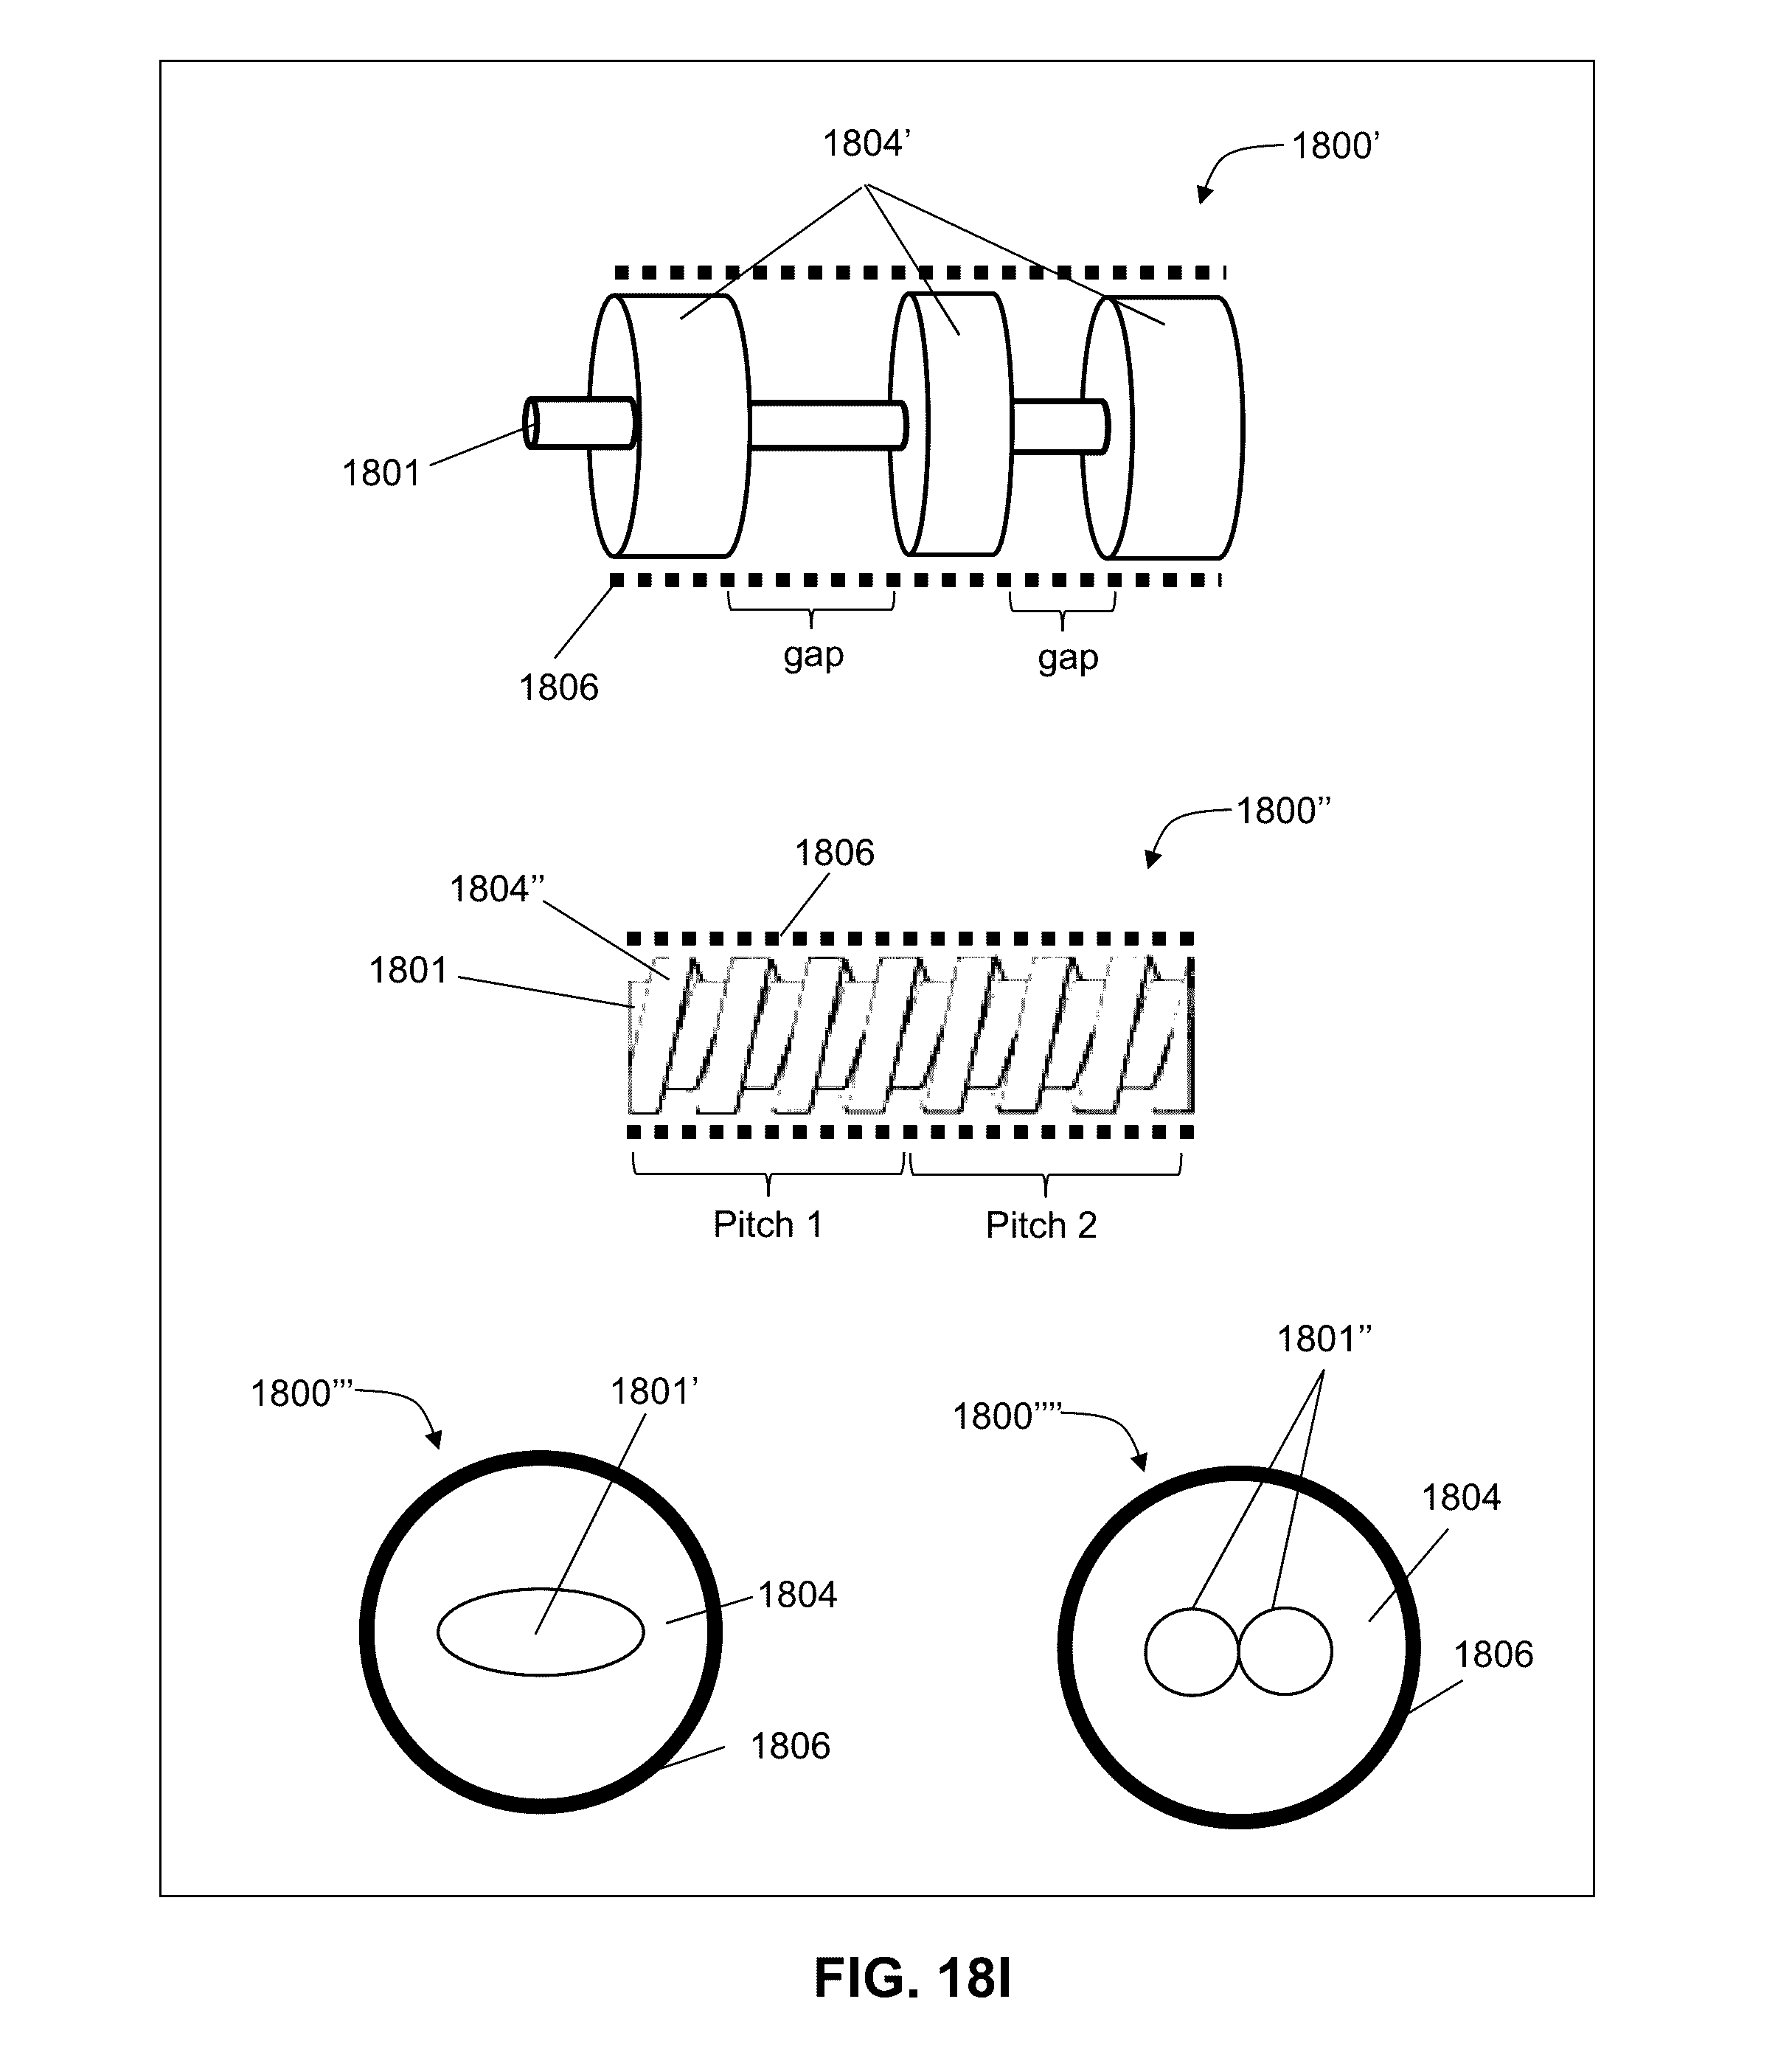 Us9490869b1 transmission medium having multiple cores and methods for use therewith patents